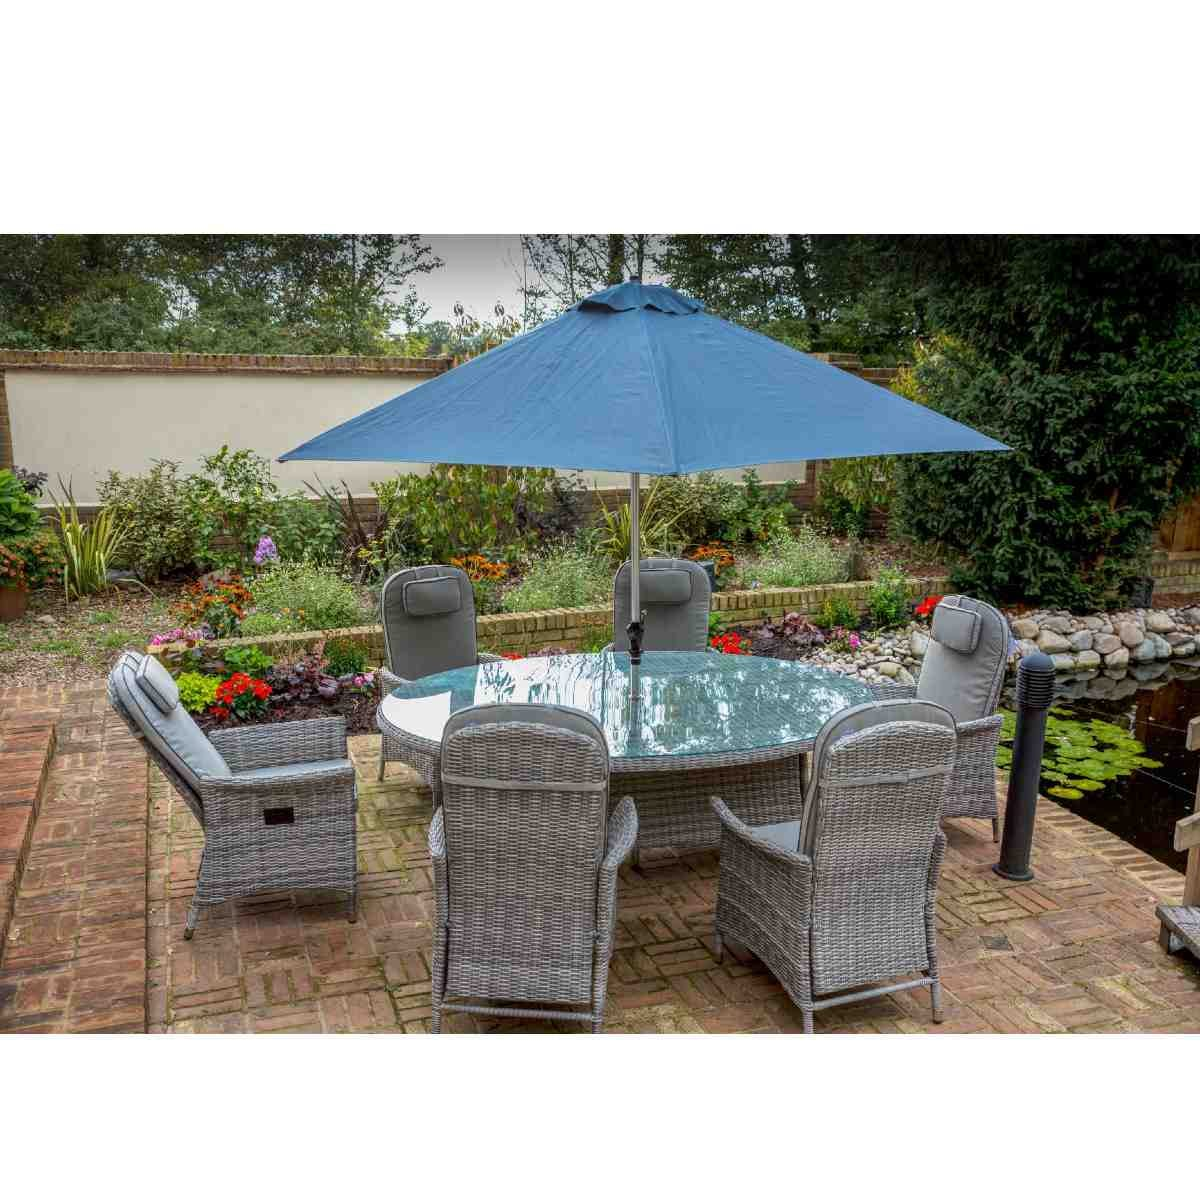 Katie Blake Flamingo 6 Reclining Chair Dining Set with 1.2m x 1.75m Oval Table Parasol & Base - Grey / Blue